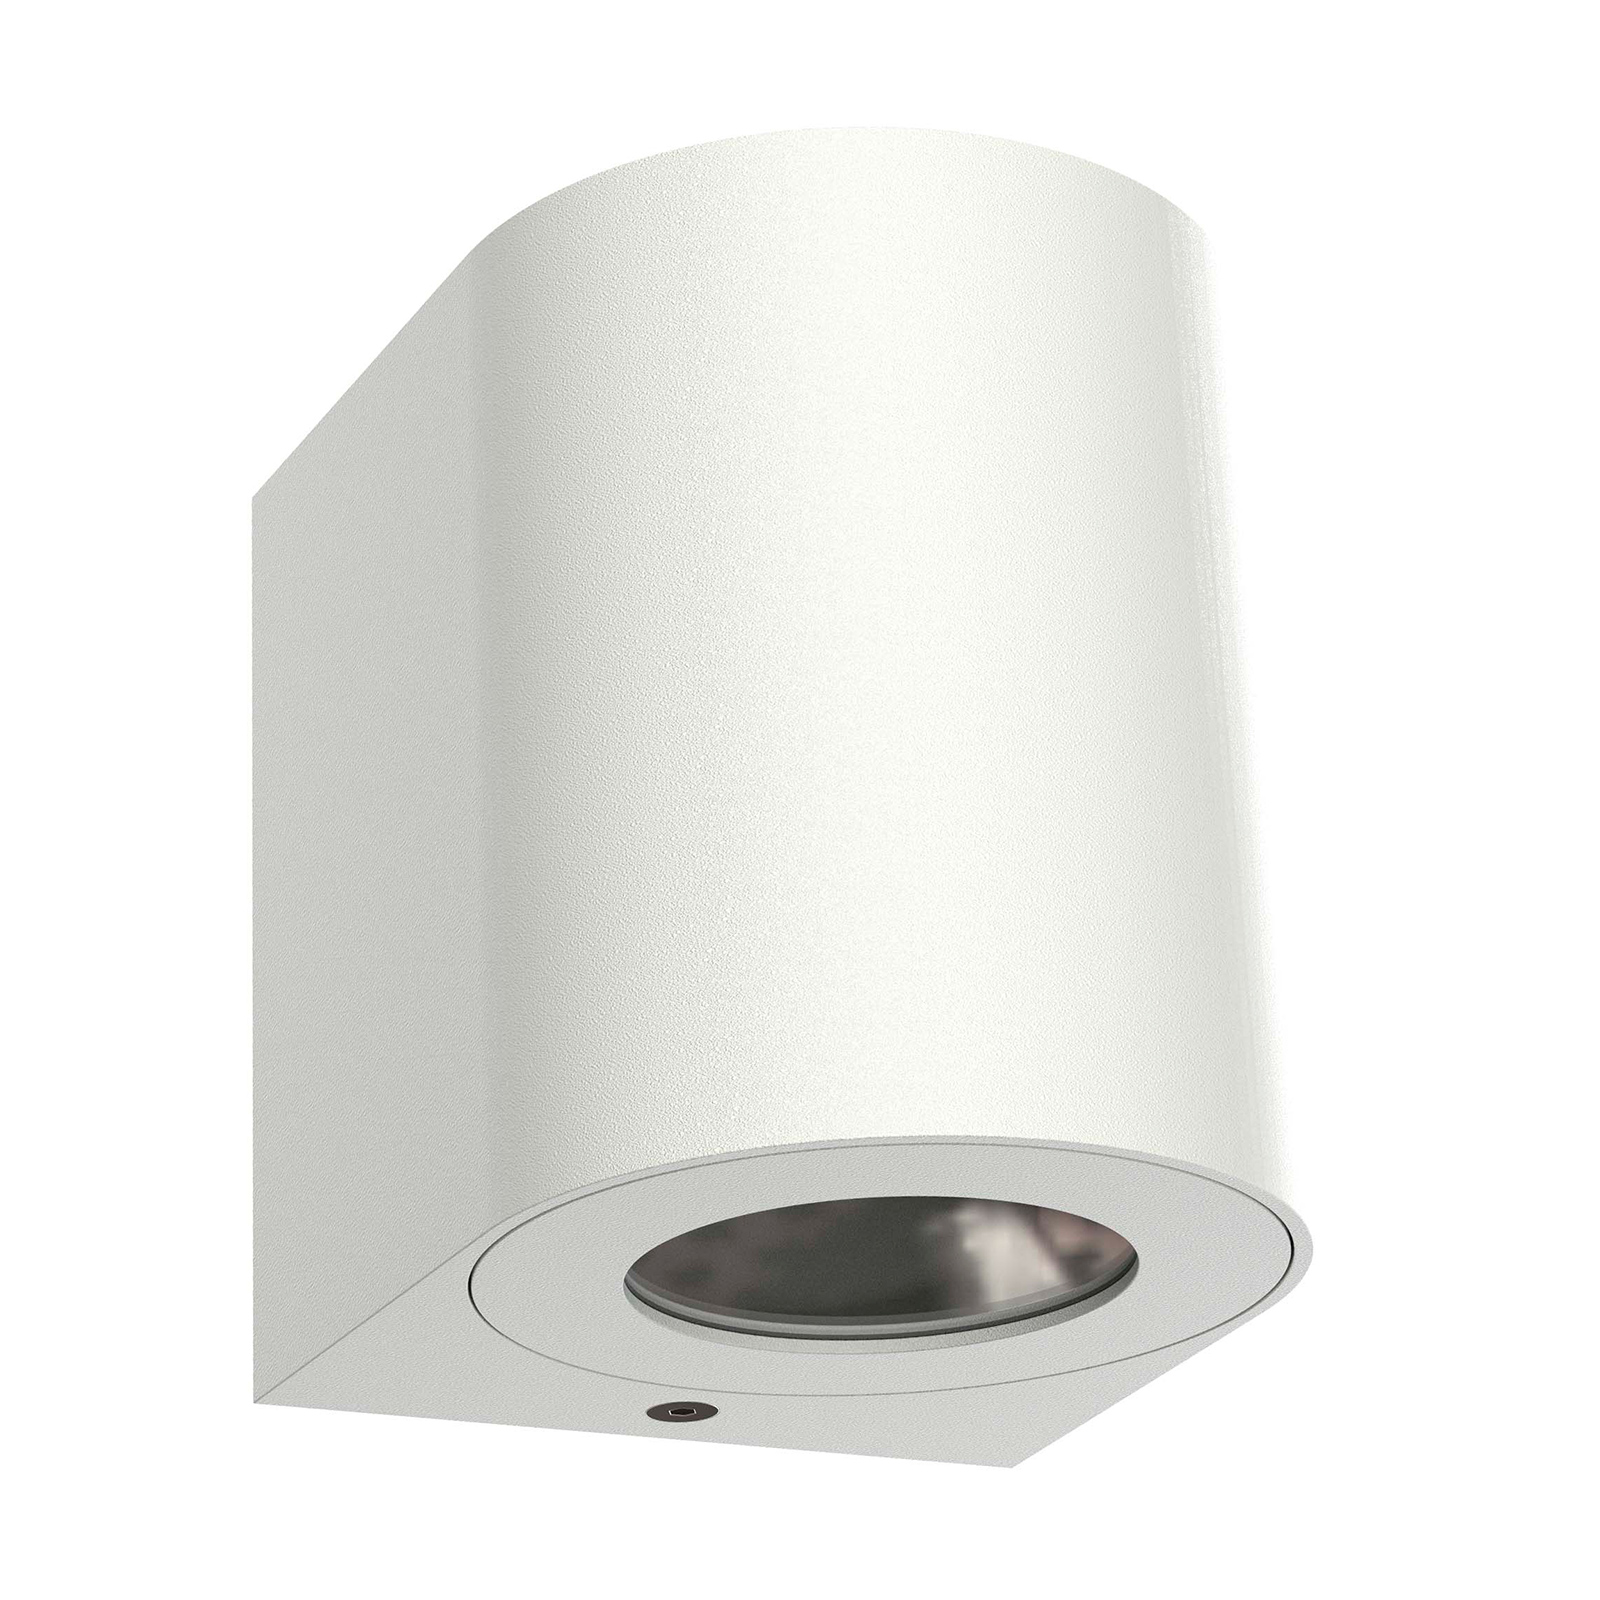 Vägglampa Nordlux Canto 2